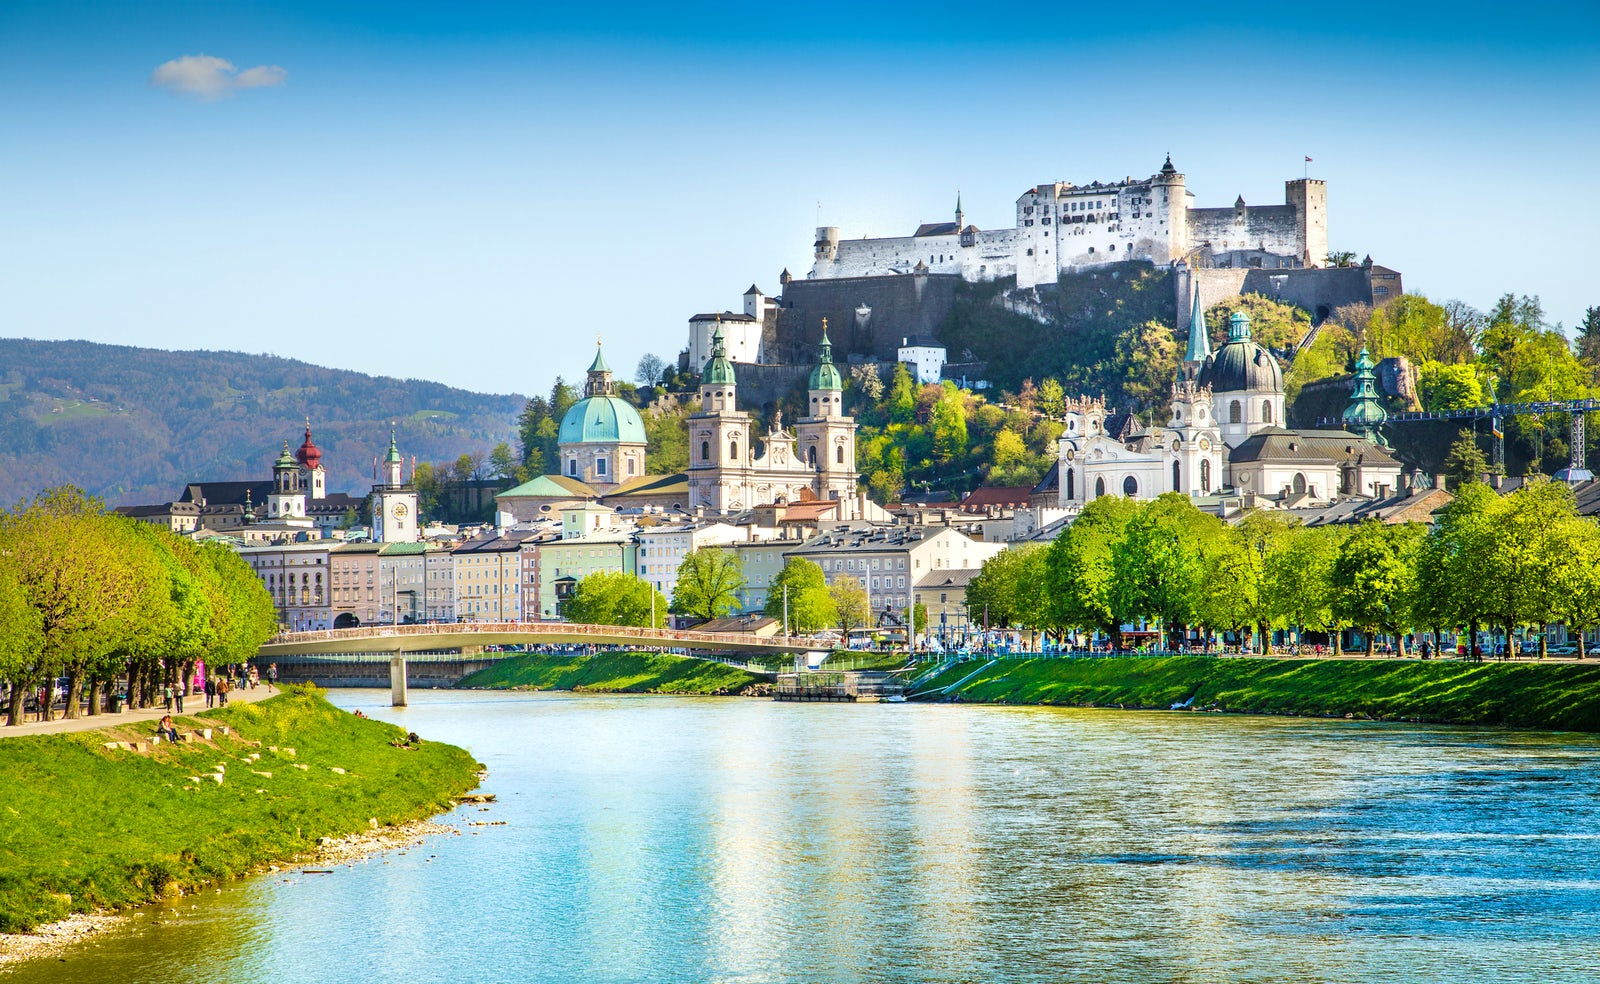 !i18n:fr:data.cities:salzburg.picture.caption